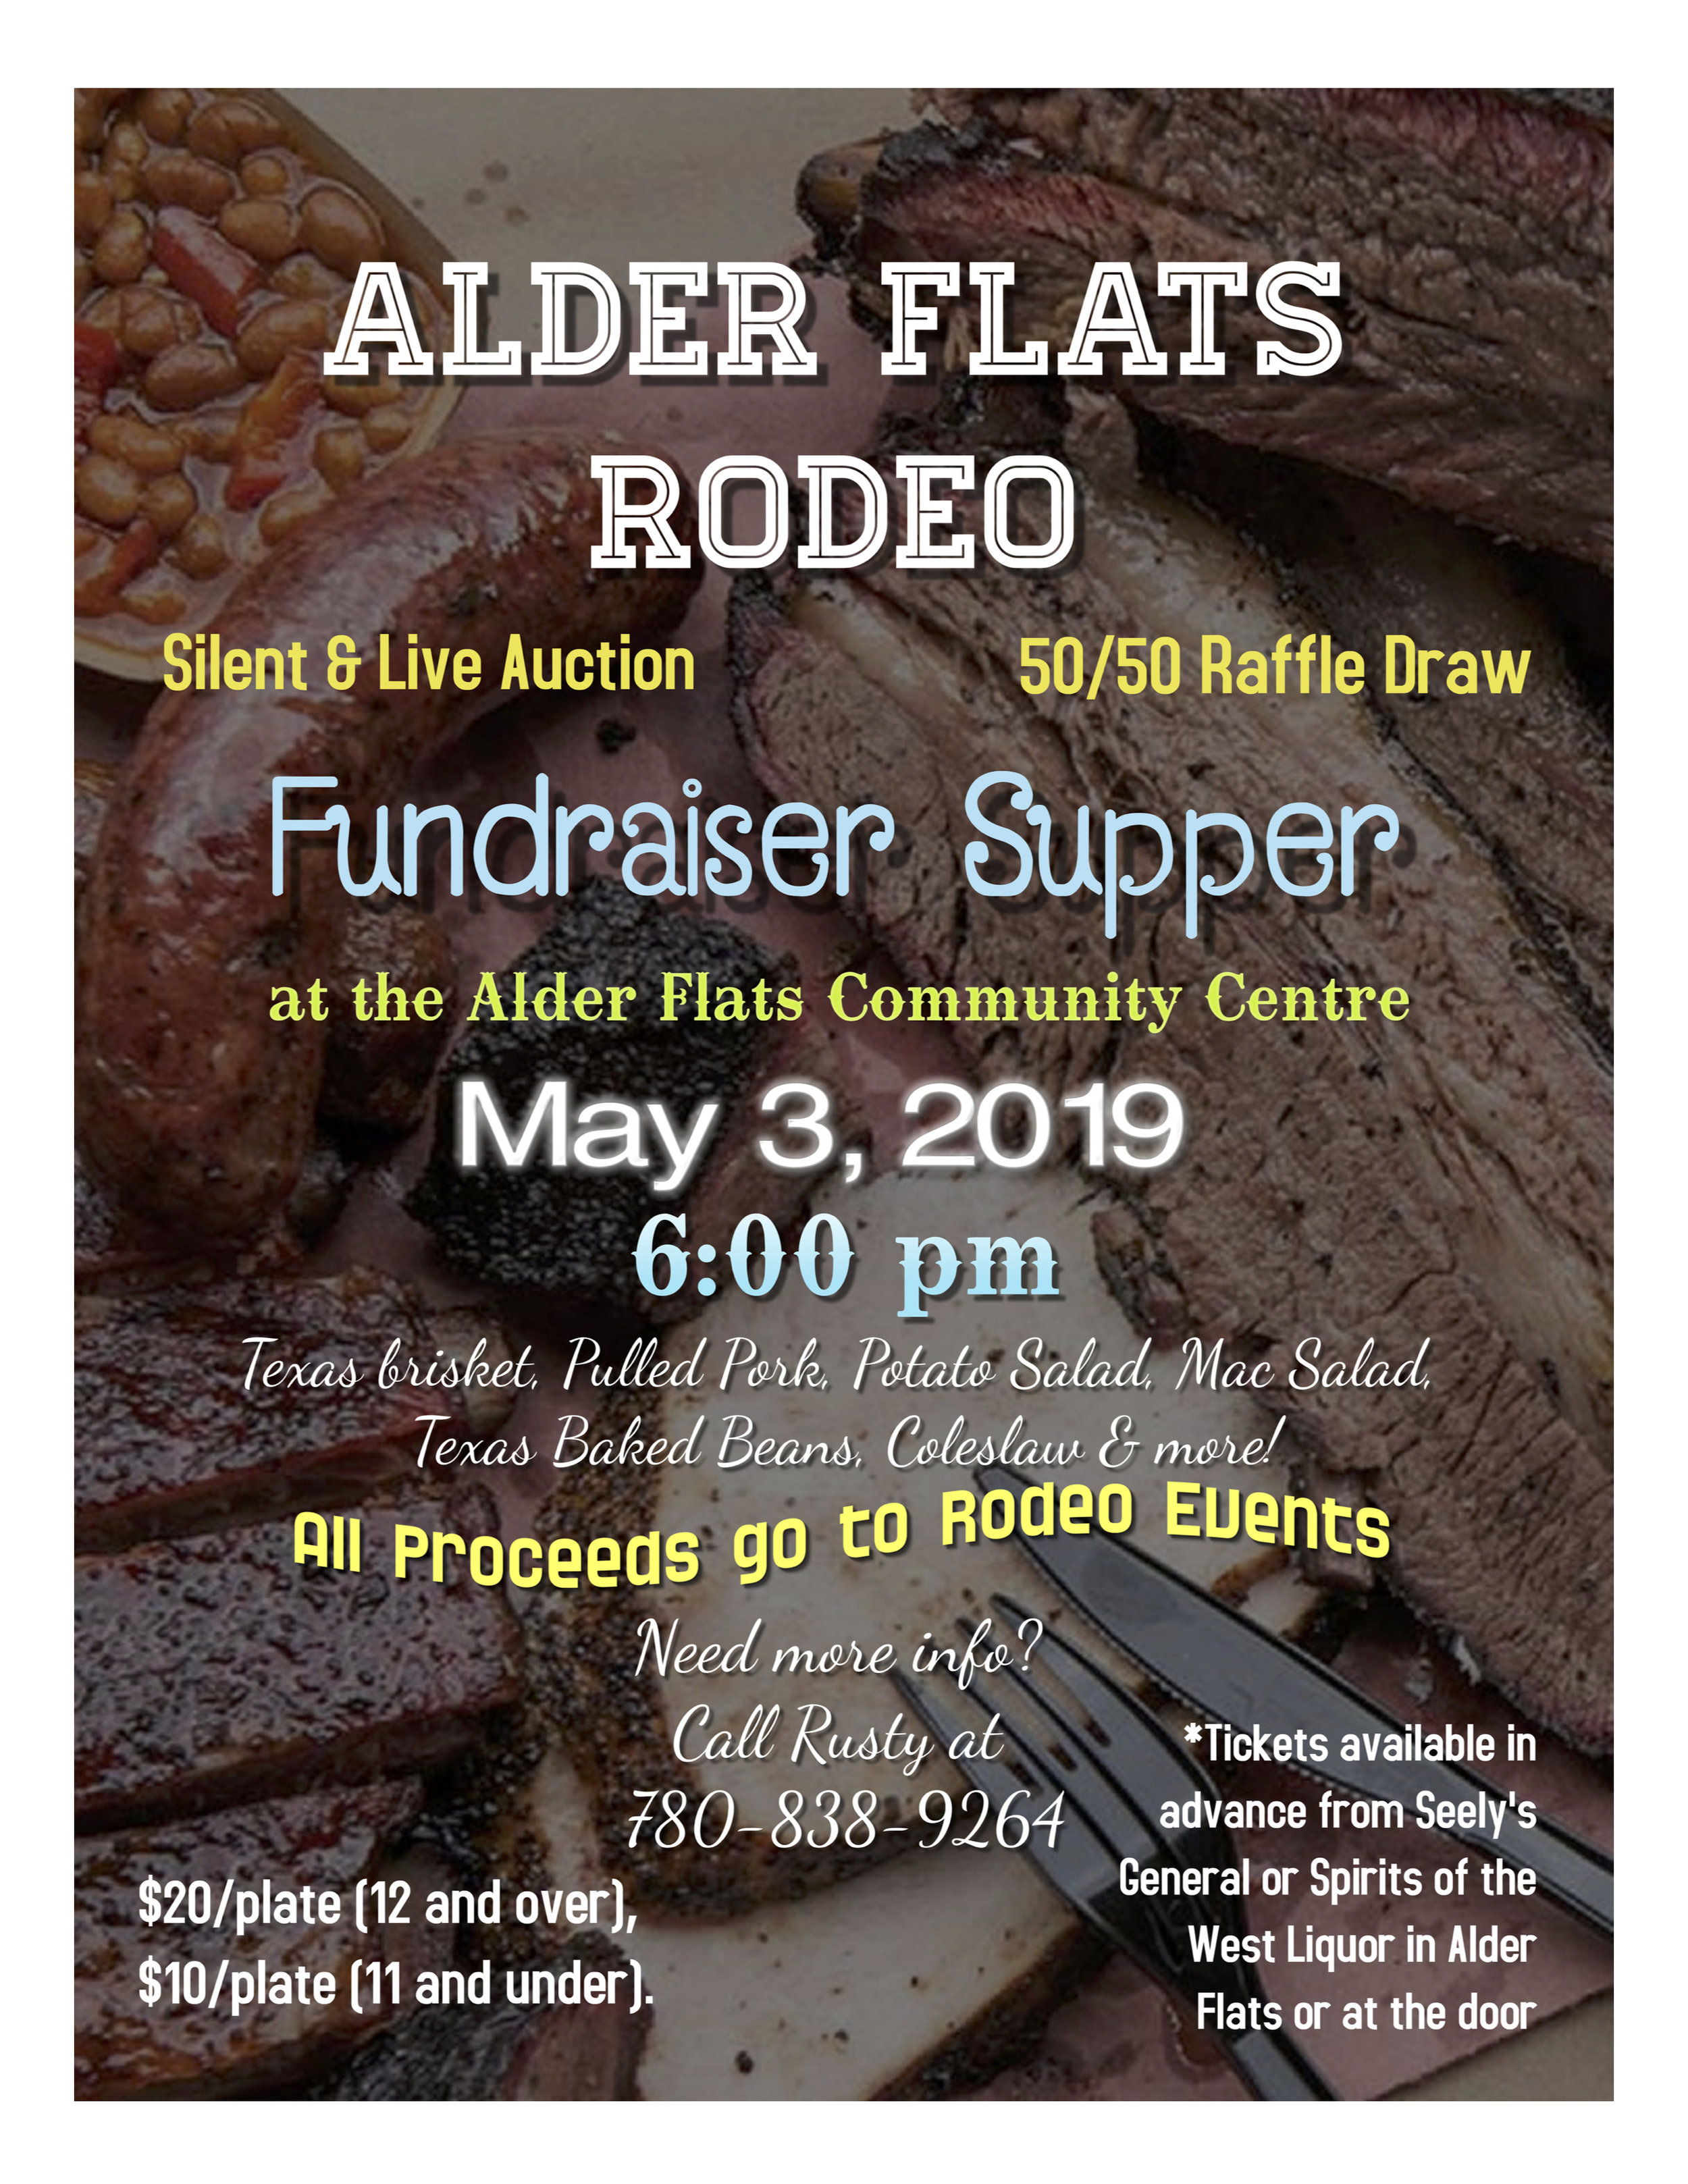 Rodeo Fundraiser Supper.jpg